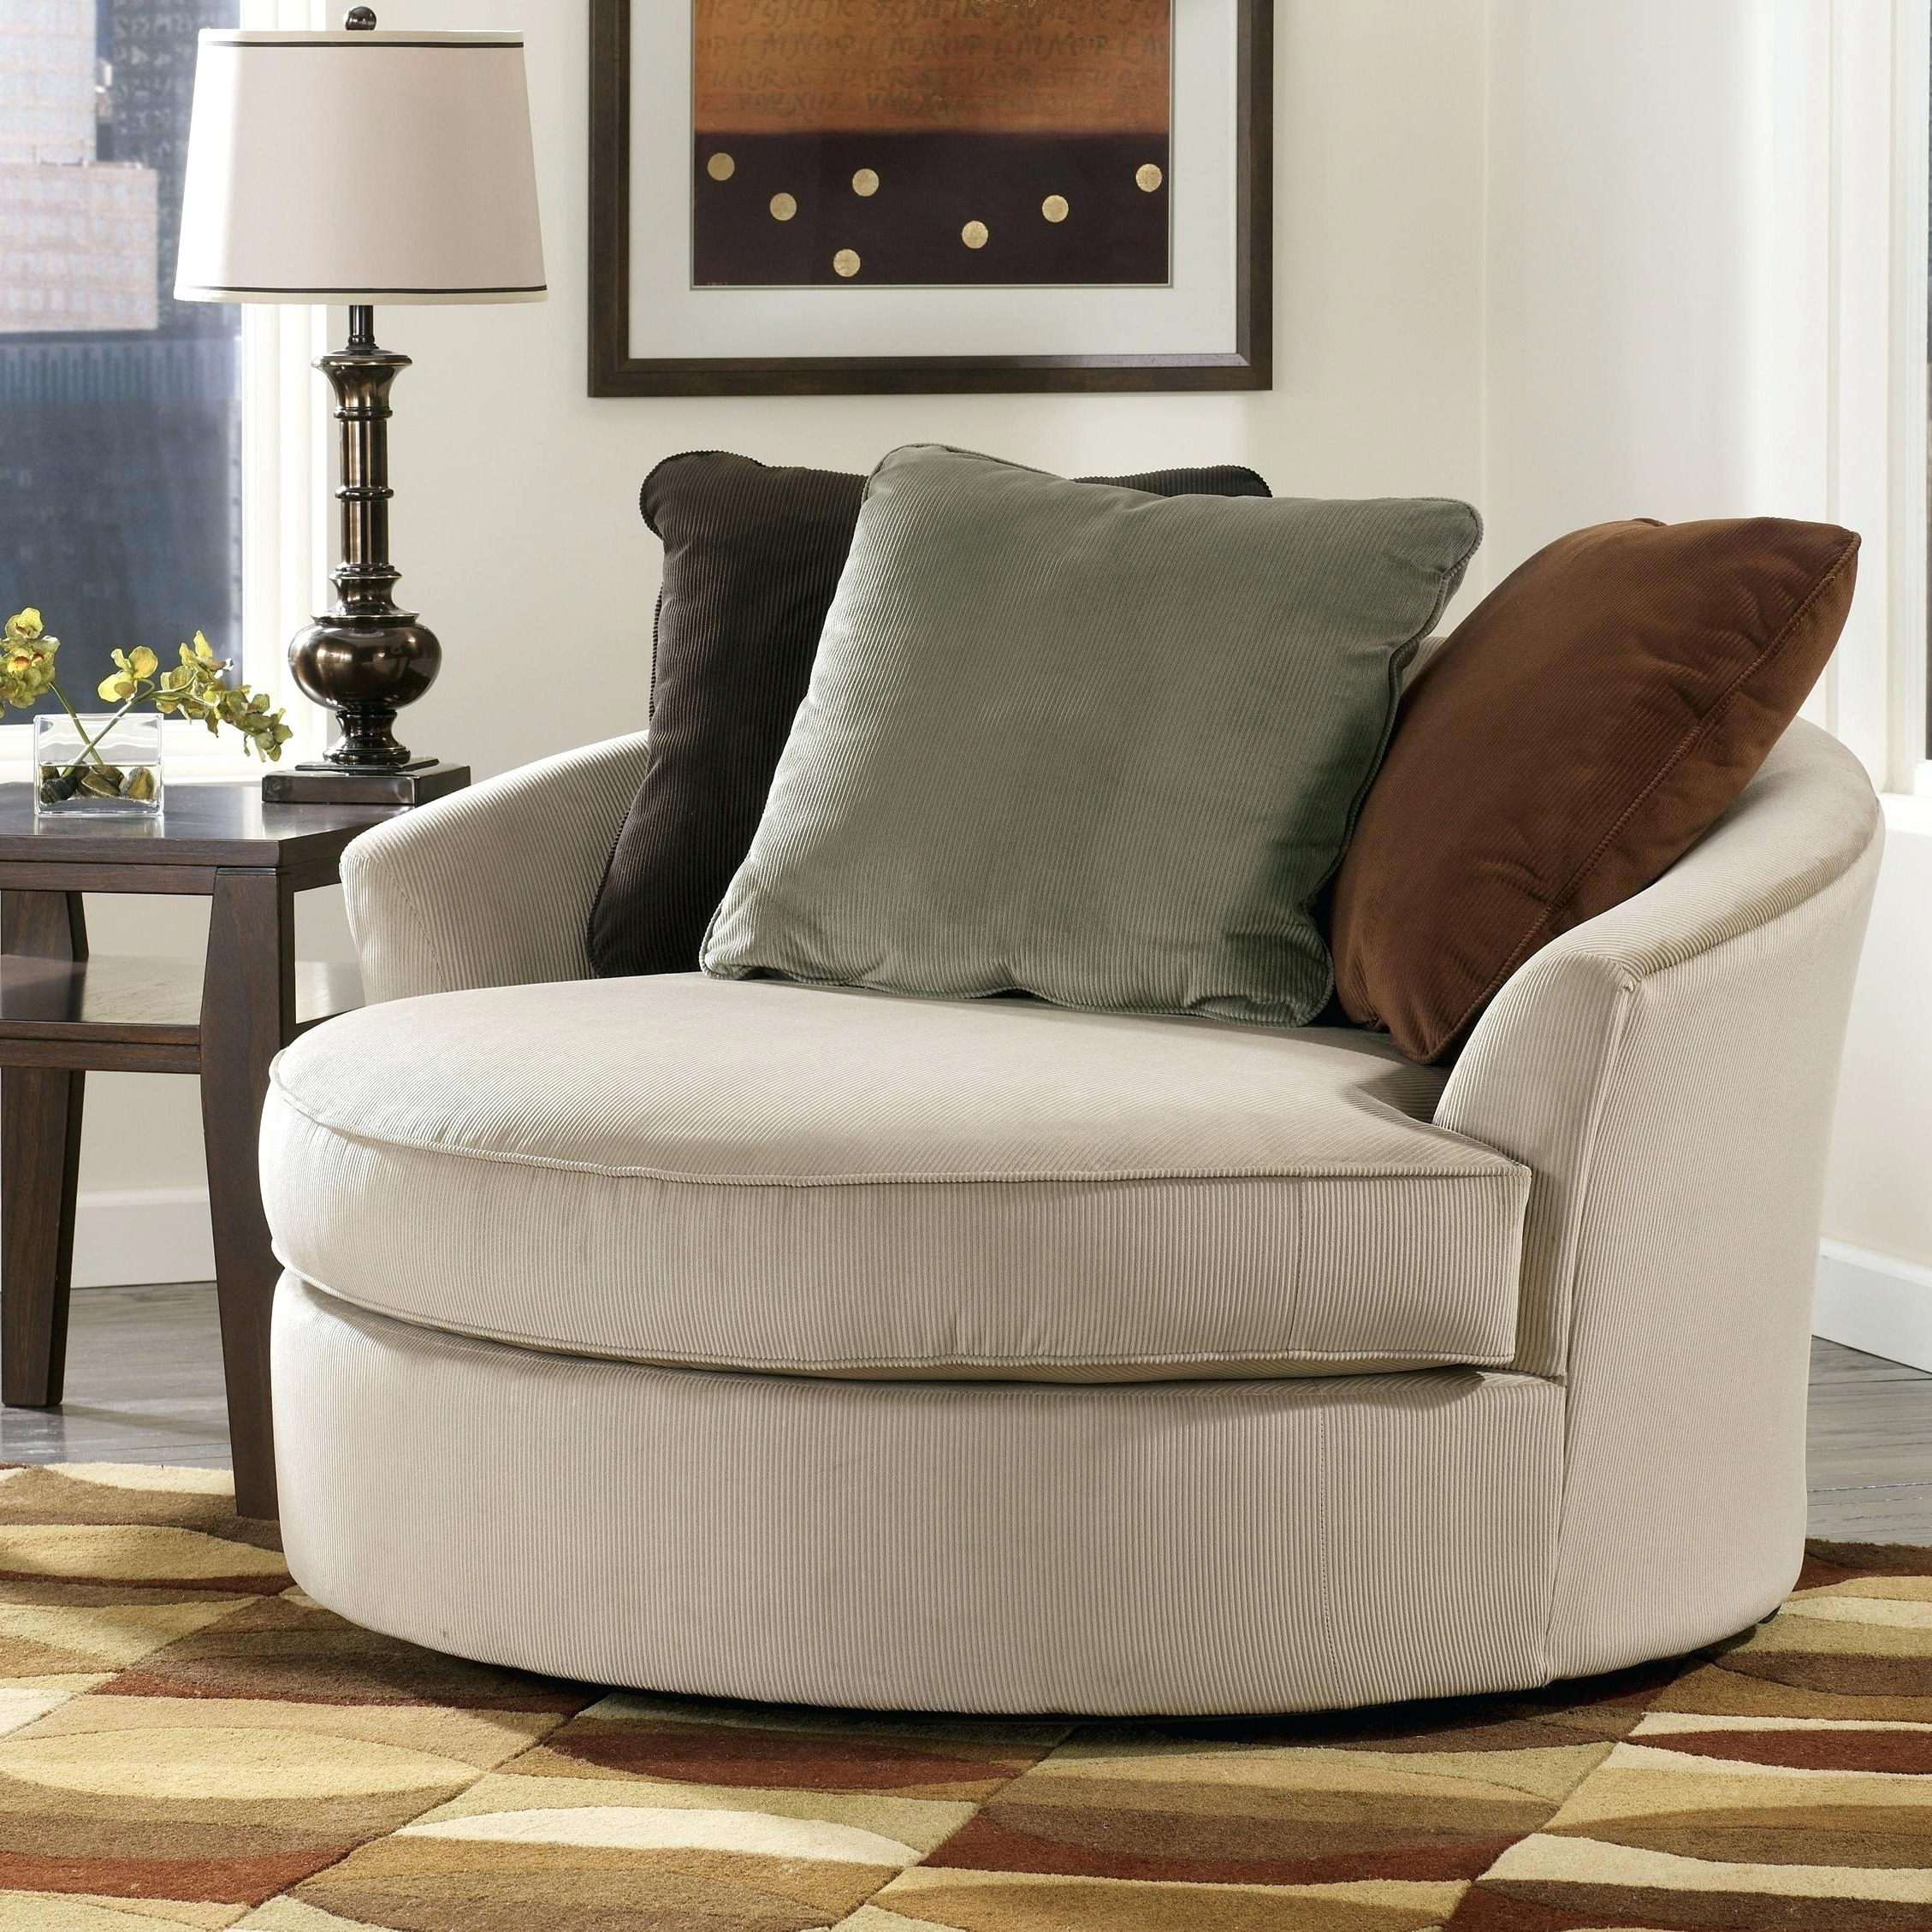 Sofa : Luxury Round Swivel Sofa Chair Latest Large With Crescent With Most Current Swivel Sofa Chairs (View 19 of 20)